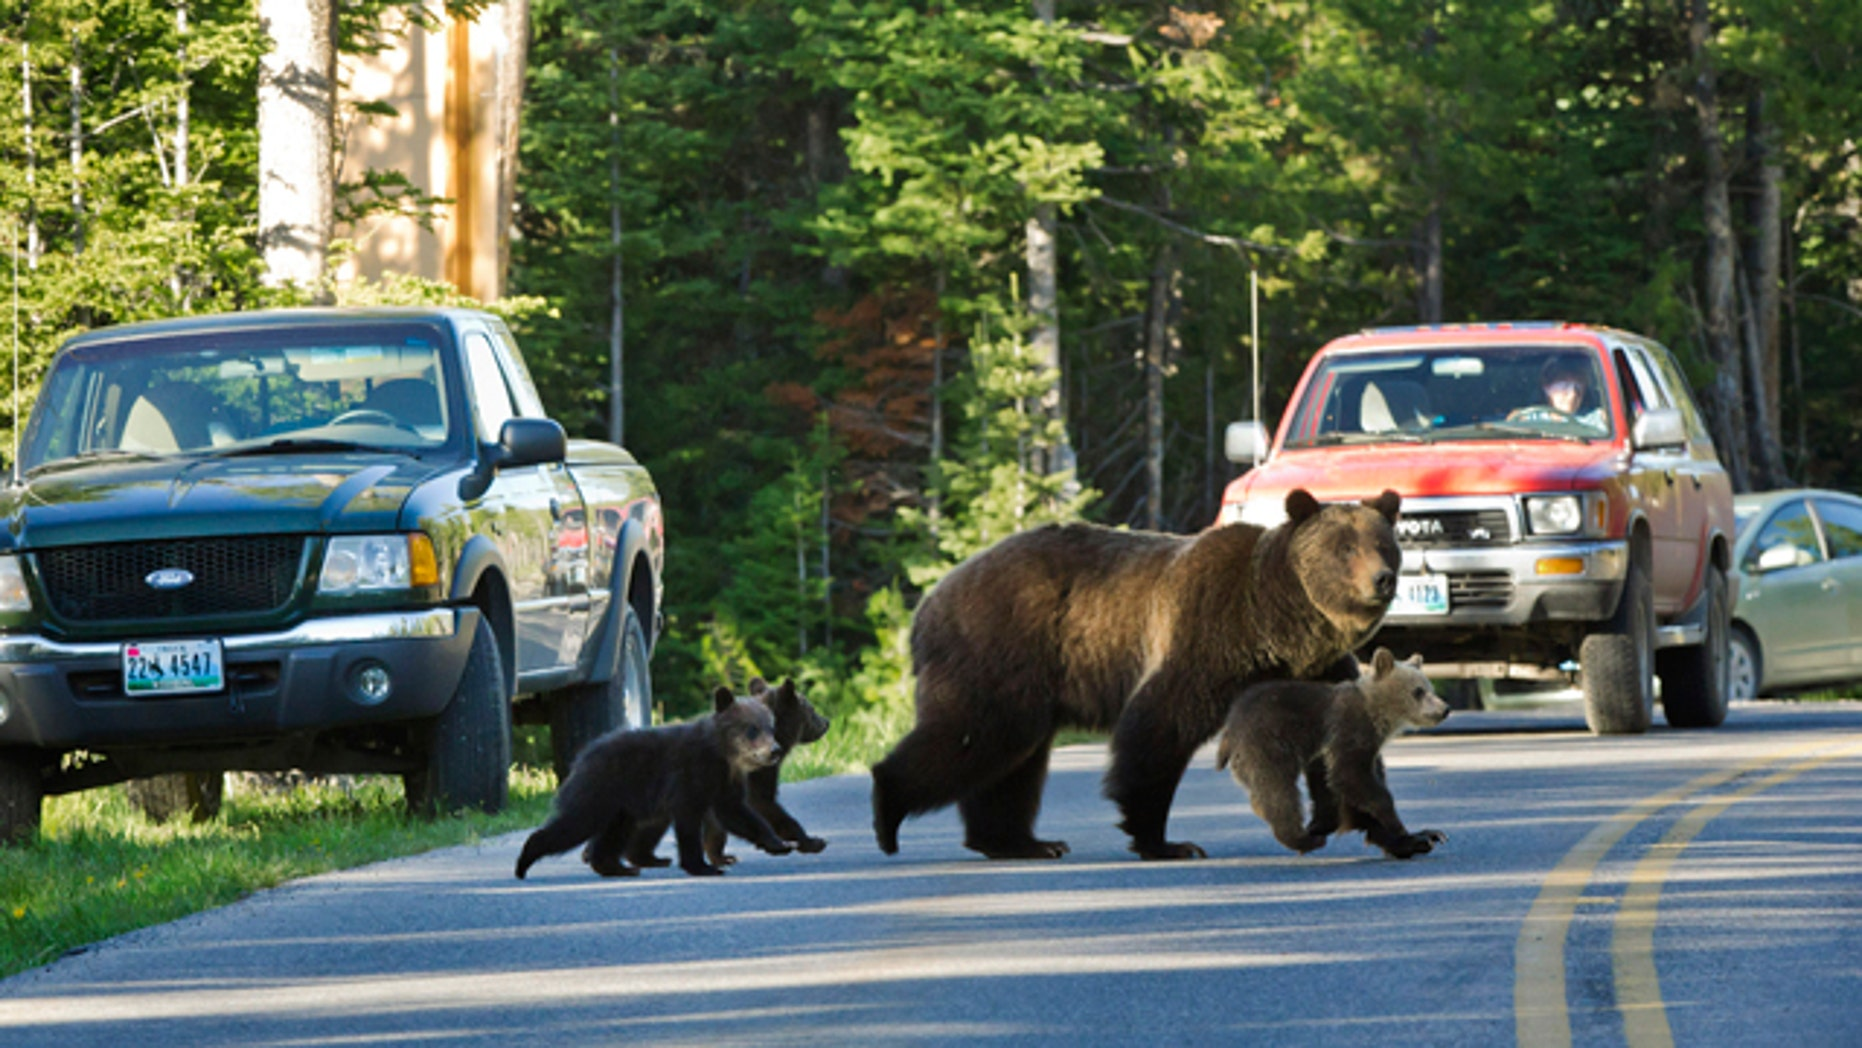 FILE - This June 2011 file photo shows Grizzly bear No. 399 crossing a road in Grand Teton National Park, Wyo., with her three cubs. Grand Teton National Park is tightening its rules against getting too close to wildlife after two incidents in which a bear charged people as they stood on their cars. The new rules say when a ranger tells people to back away from wildlife, they must listen. (AP photo/Tom Mangelsen, File)